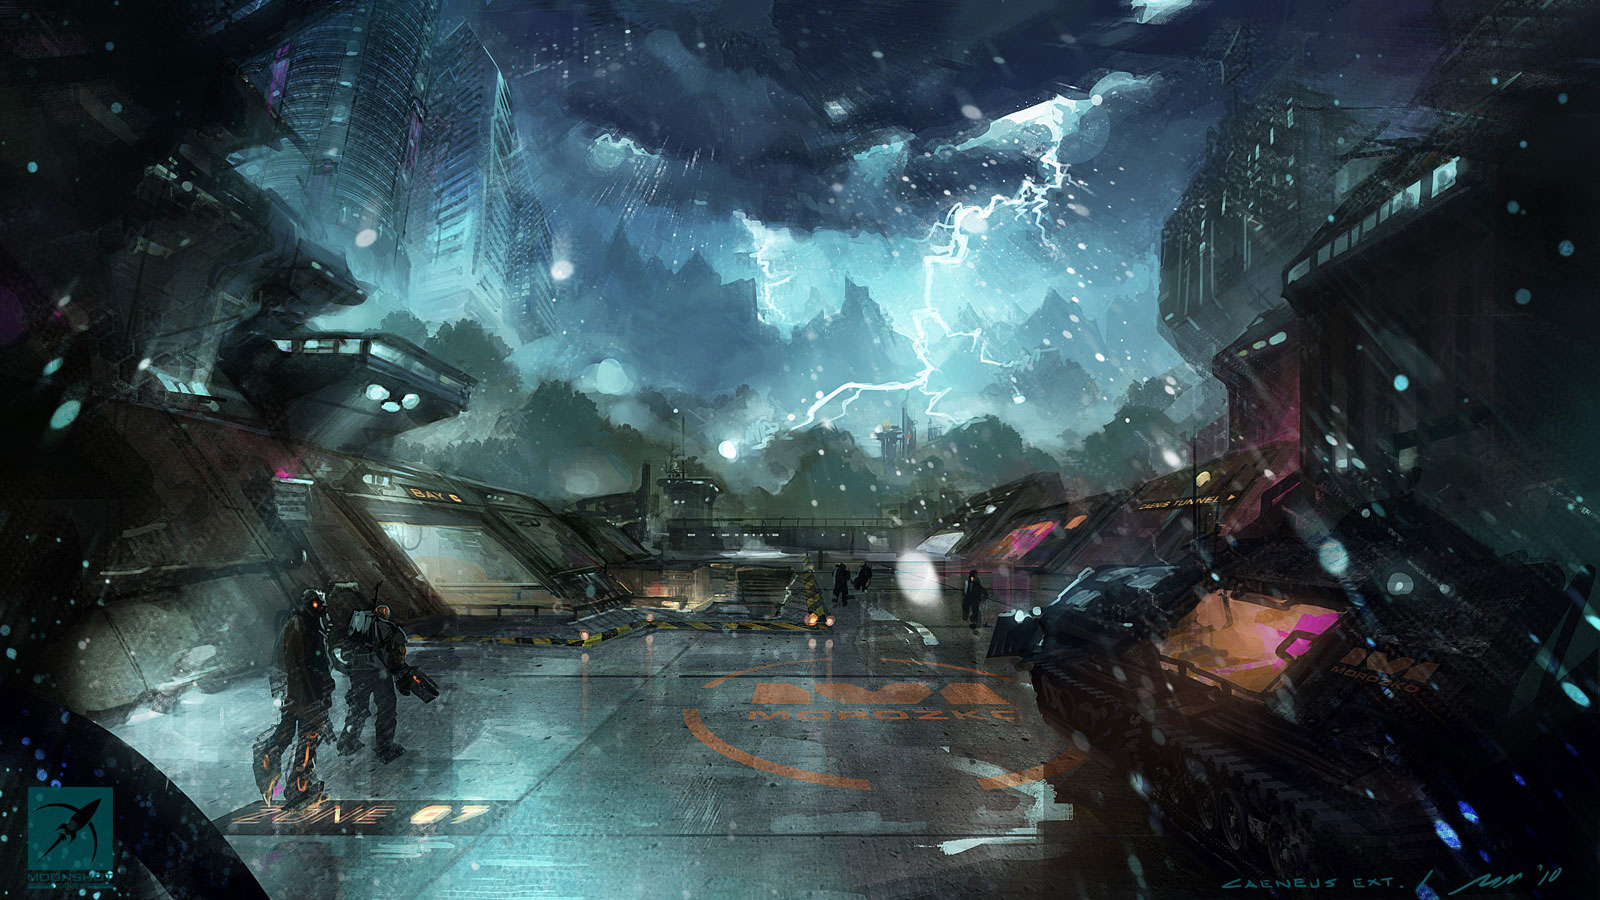 Sci fi Wallpaper of the week 39   Concept art Sci fi Videogames 1600x900